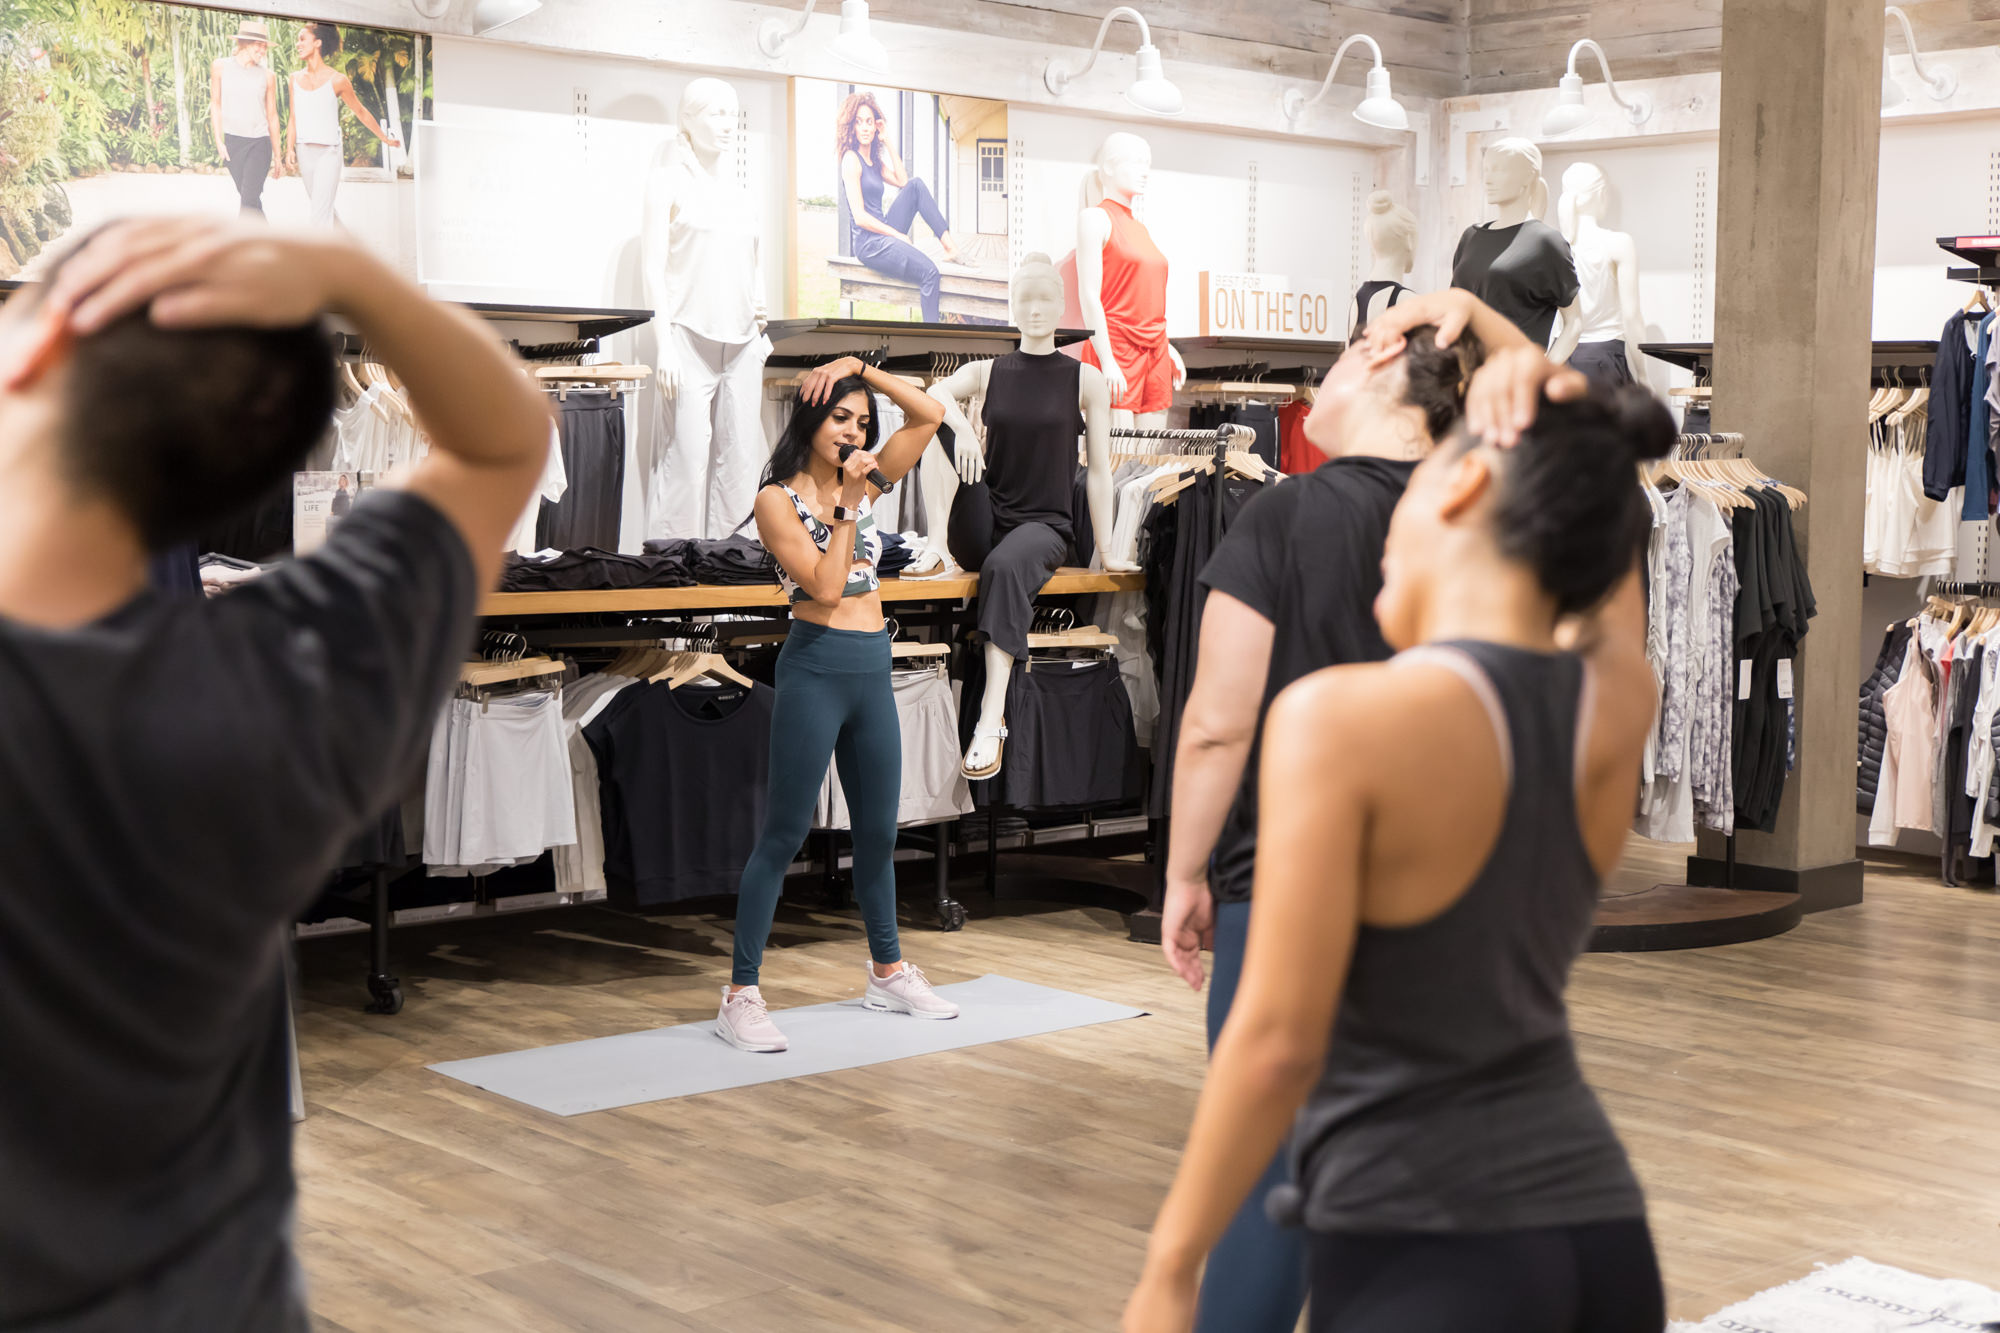 attendees-stretching-while-pegah-leads-group-fitness-pop-up-westfield-valley-fair-san-jose-in-athleta-store.jpg